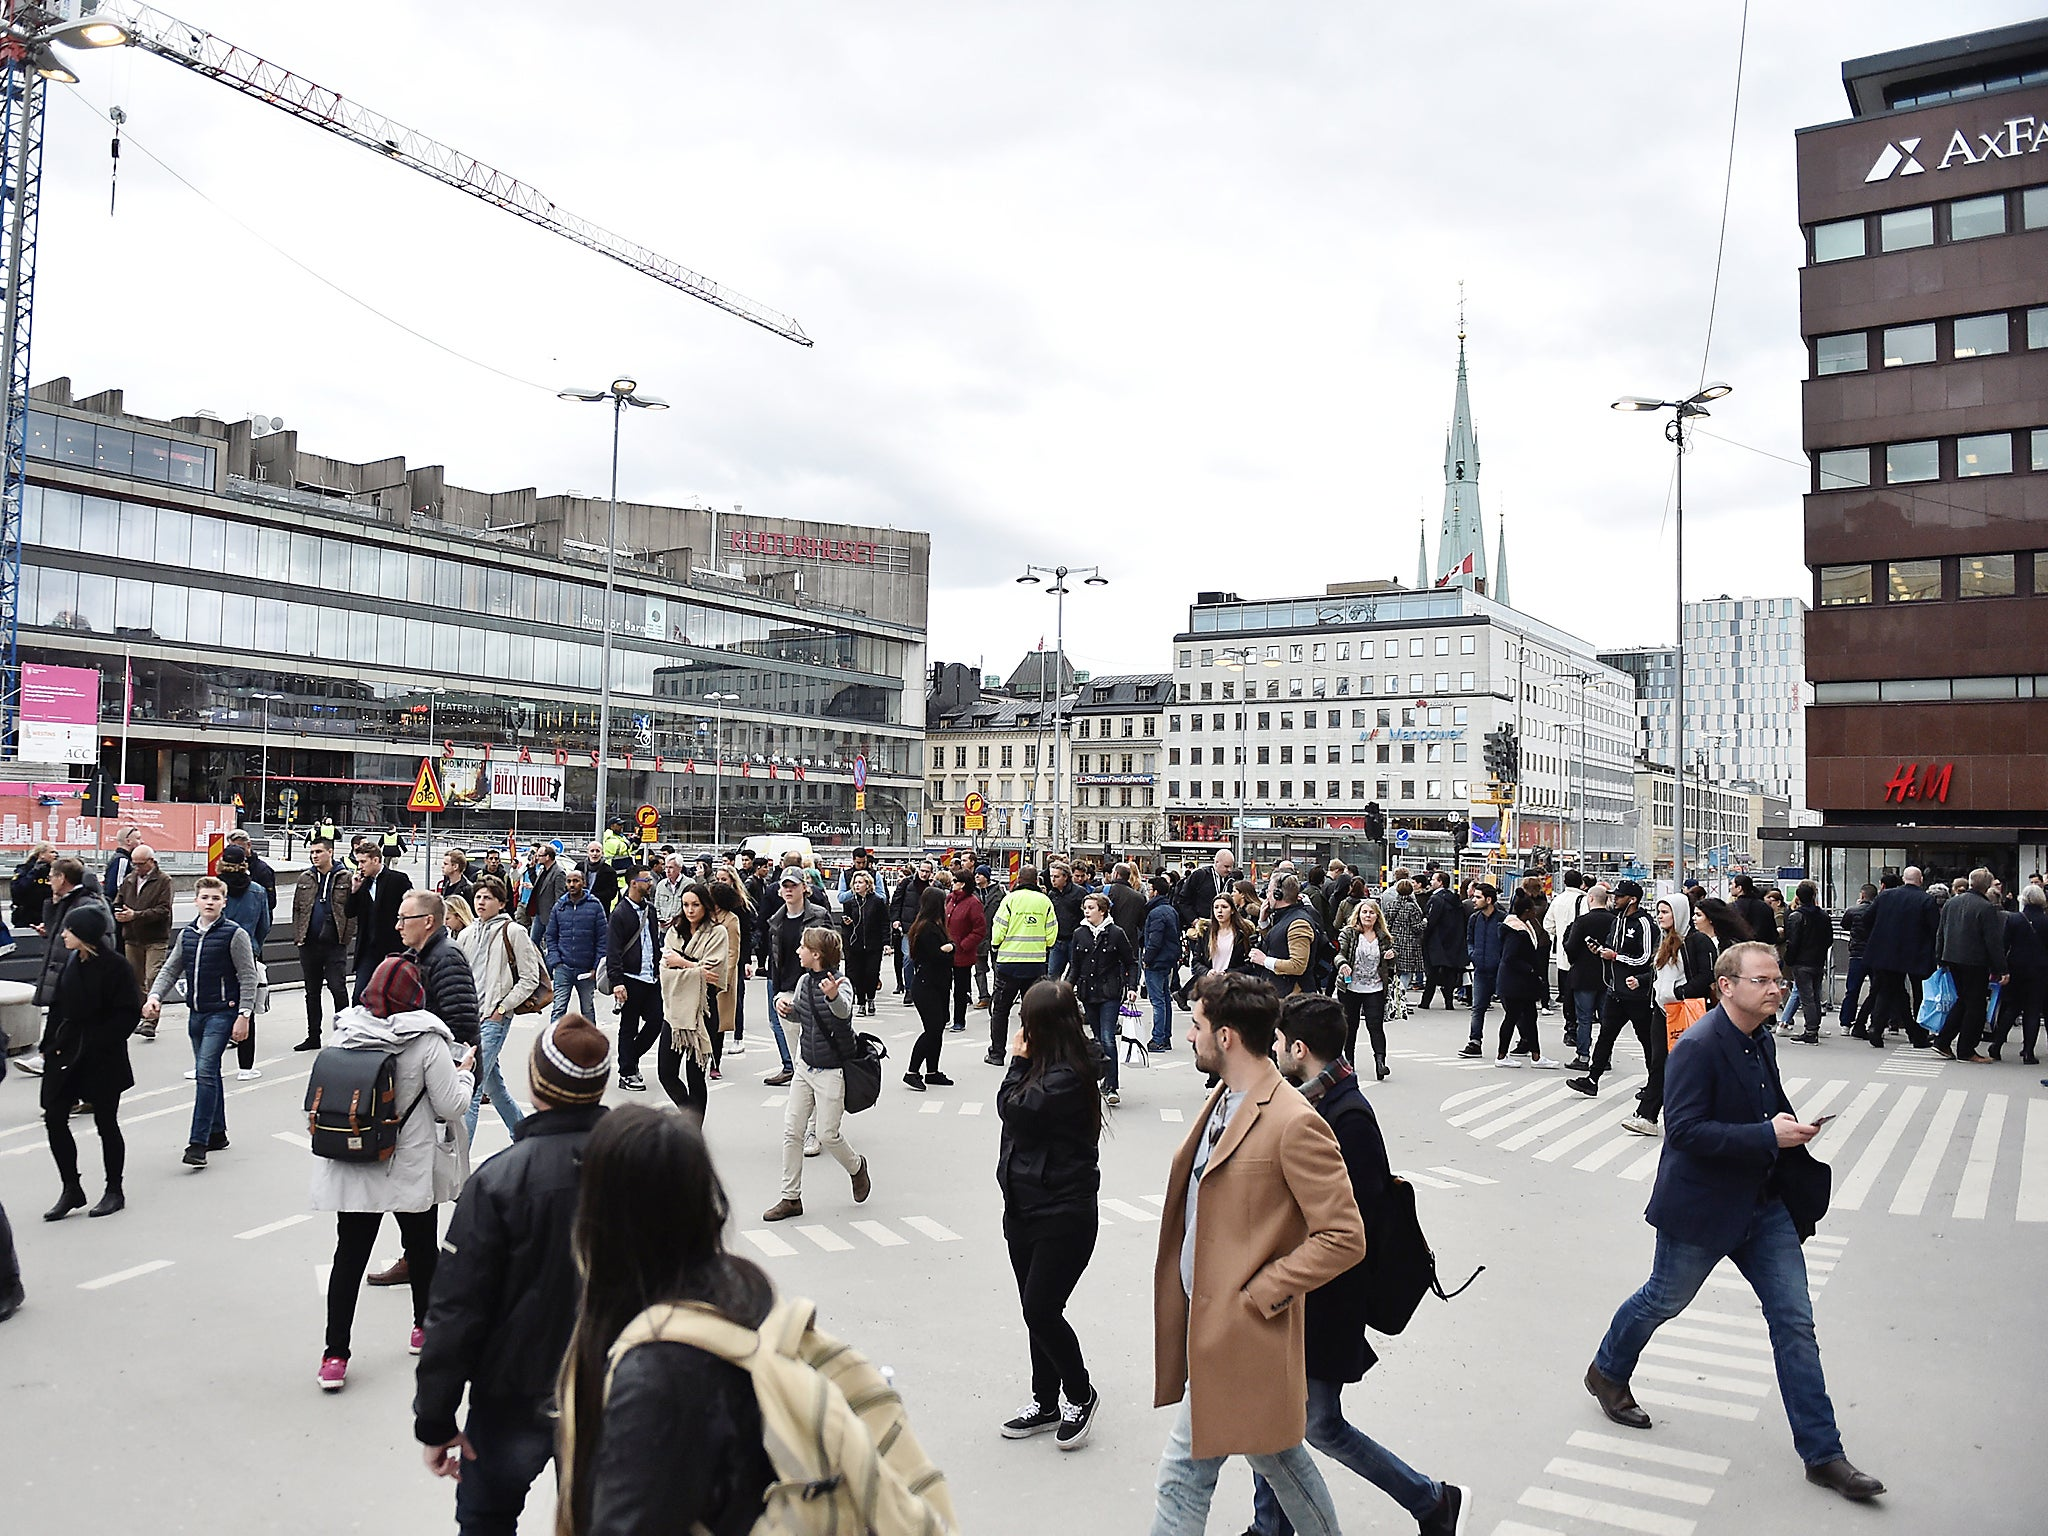 Sweden terror attack: Everything we know so far as manhunt continues ...